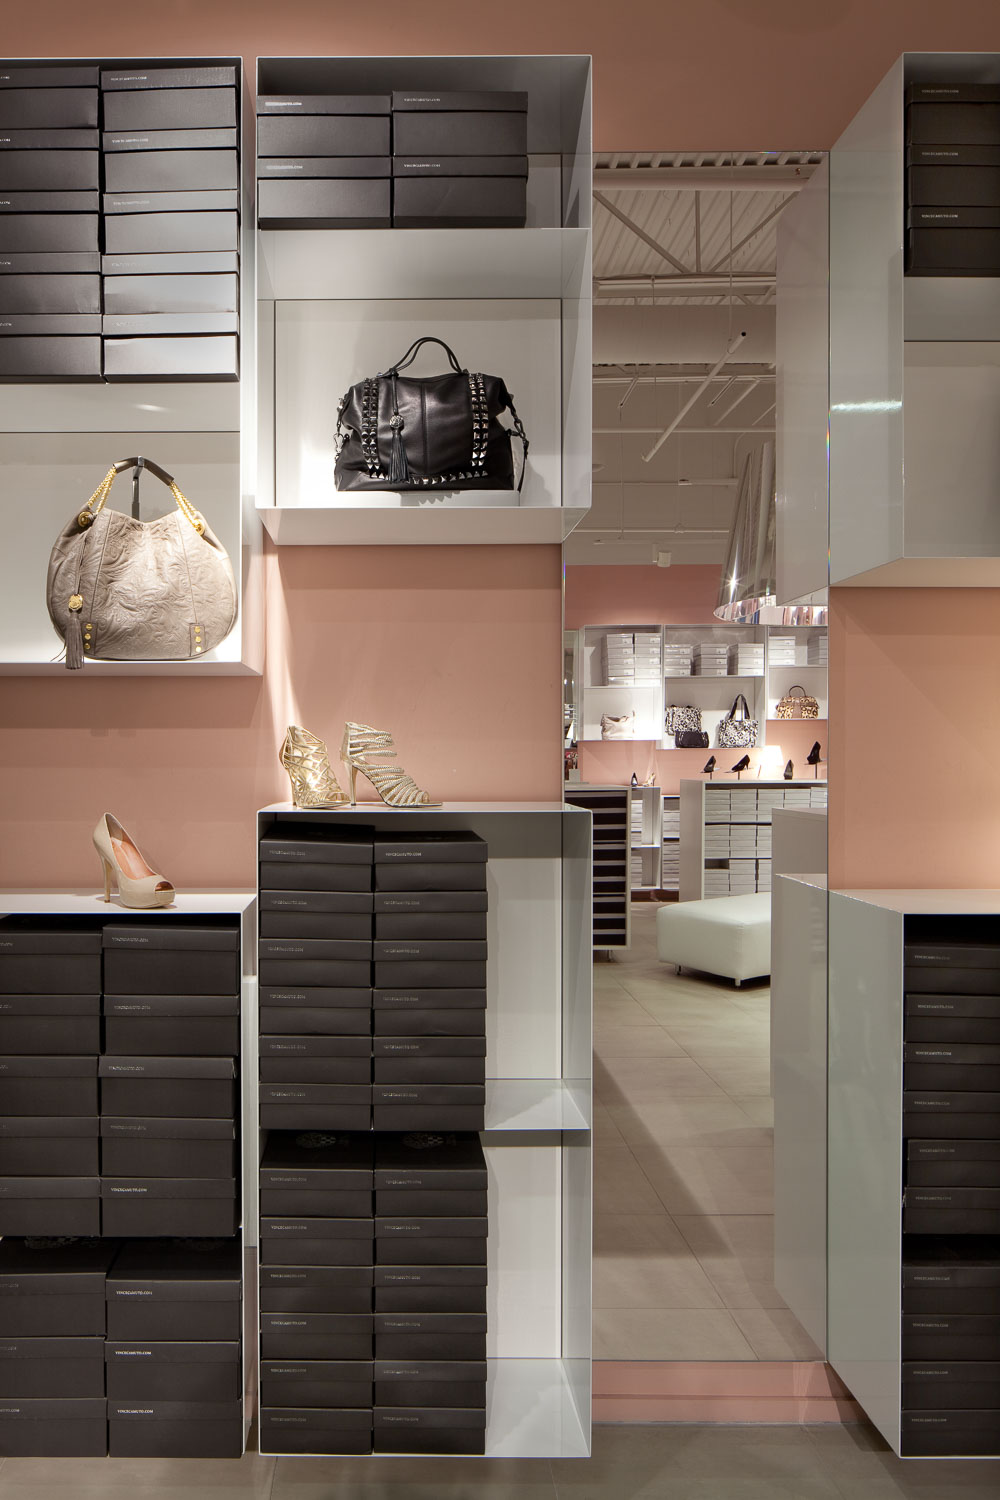 Vince Camuto Outlet Store Design 02.jpg